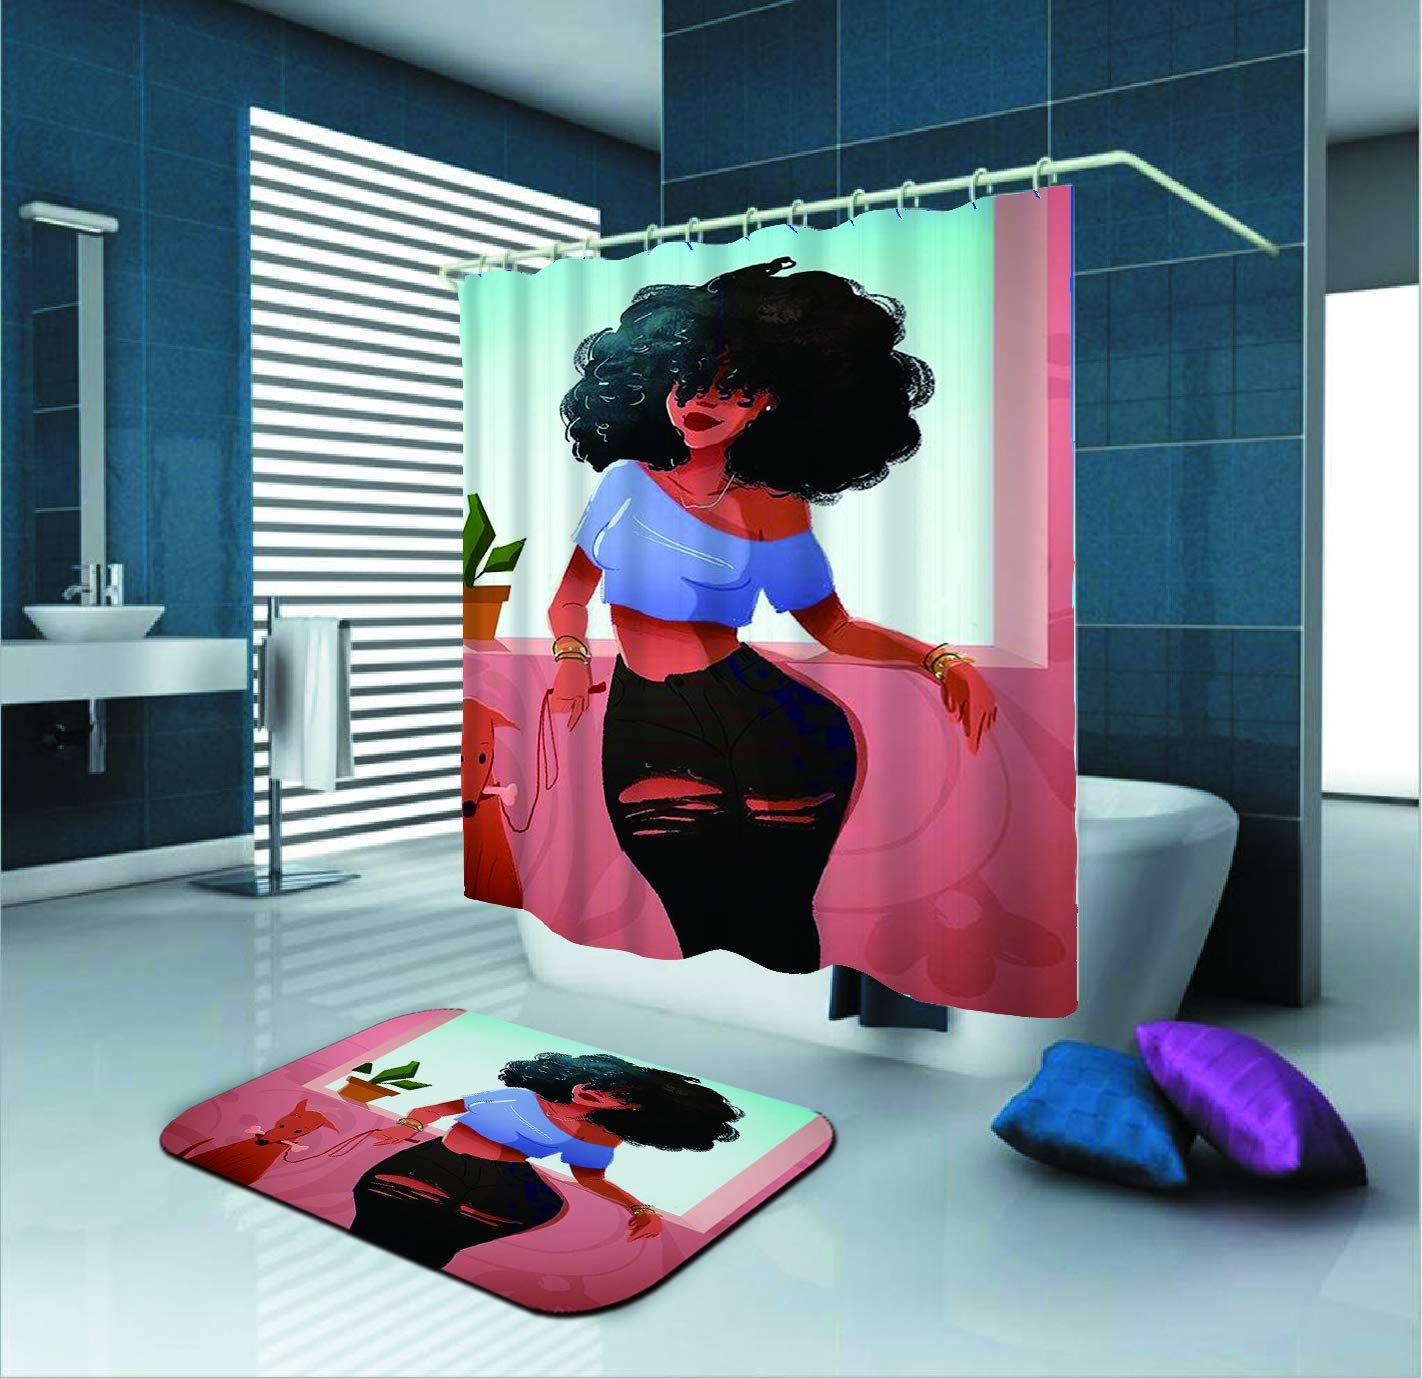 26 99 Afrocentric Shower Curtain By Sara Nell Black Woman With